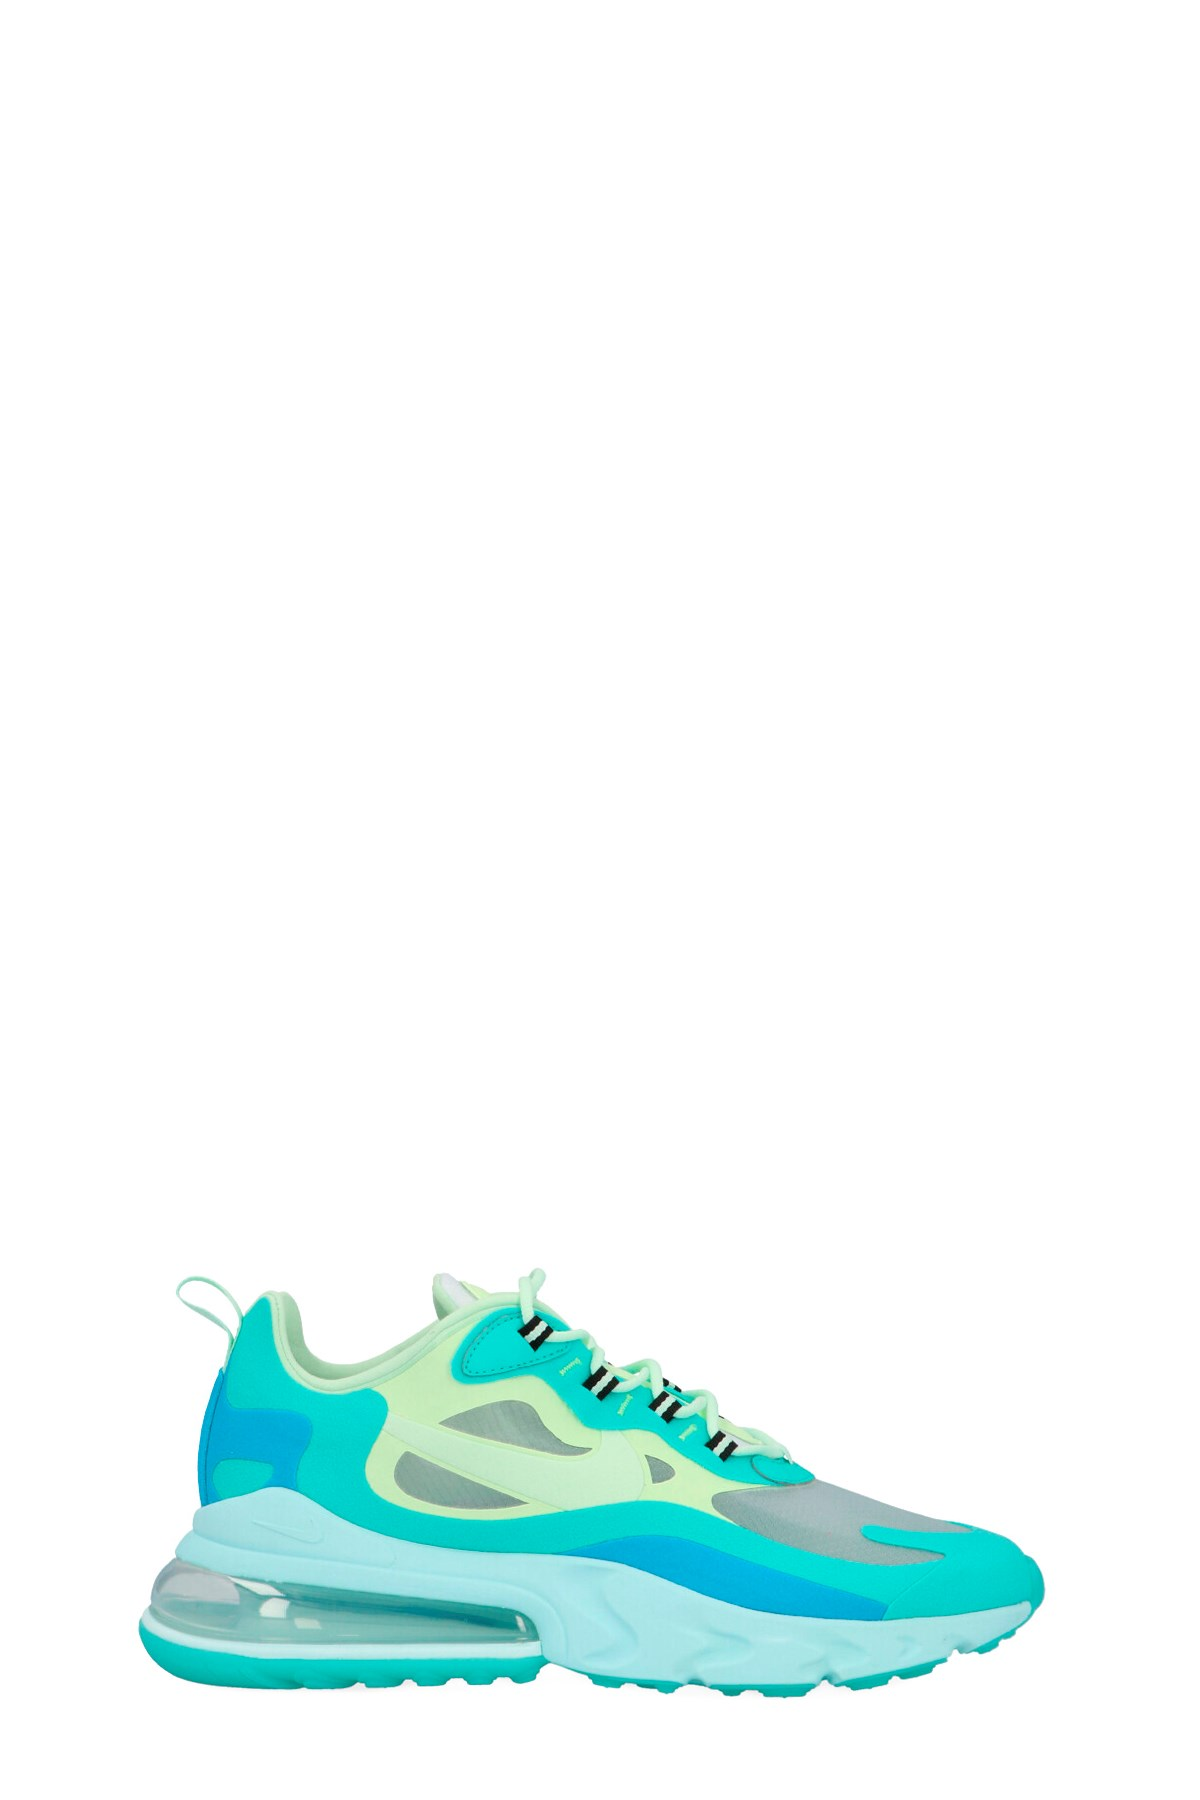 air max 270 react verde agua